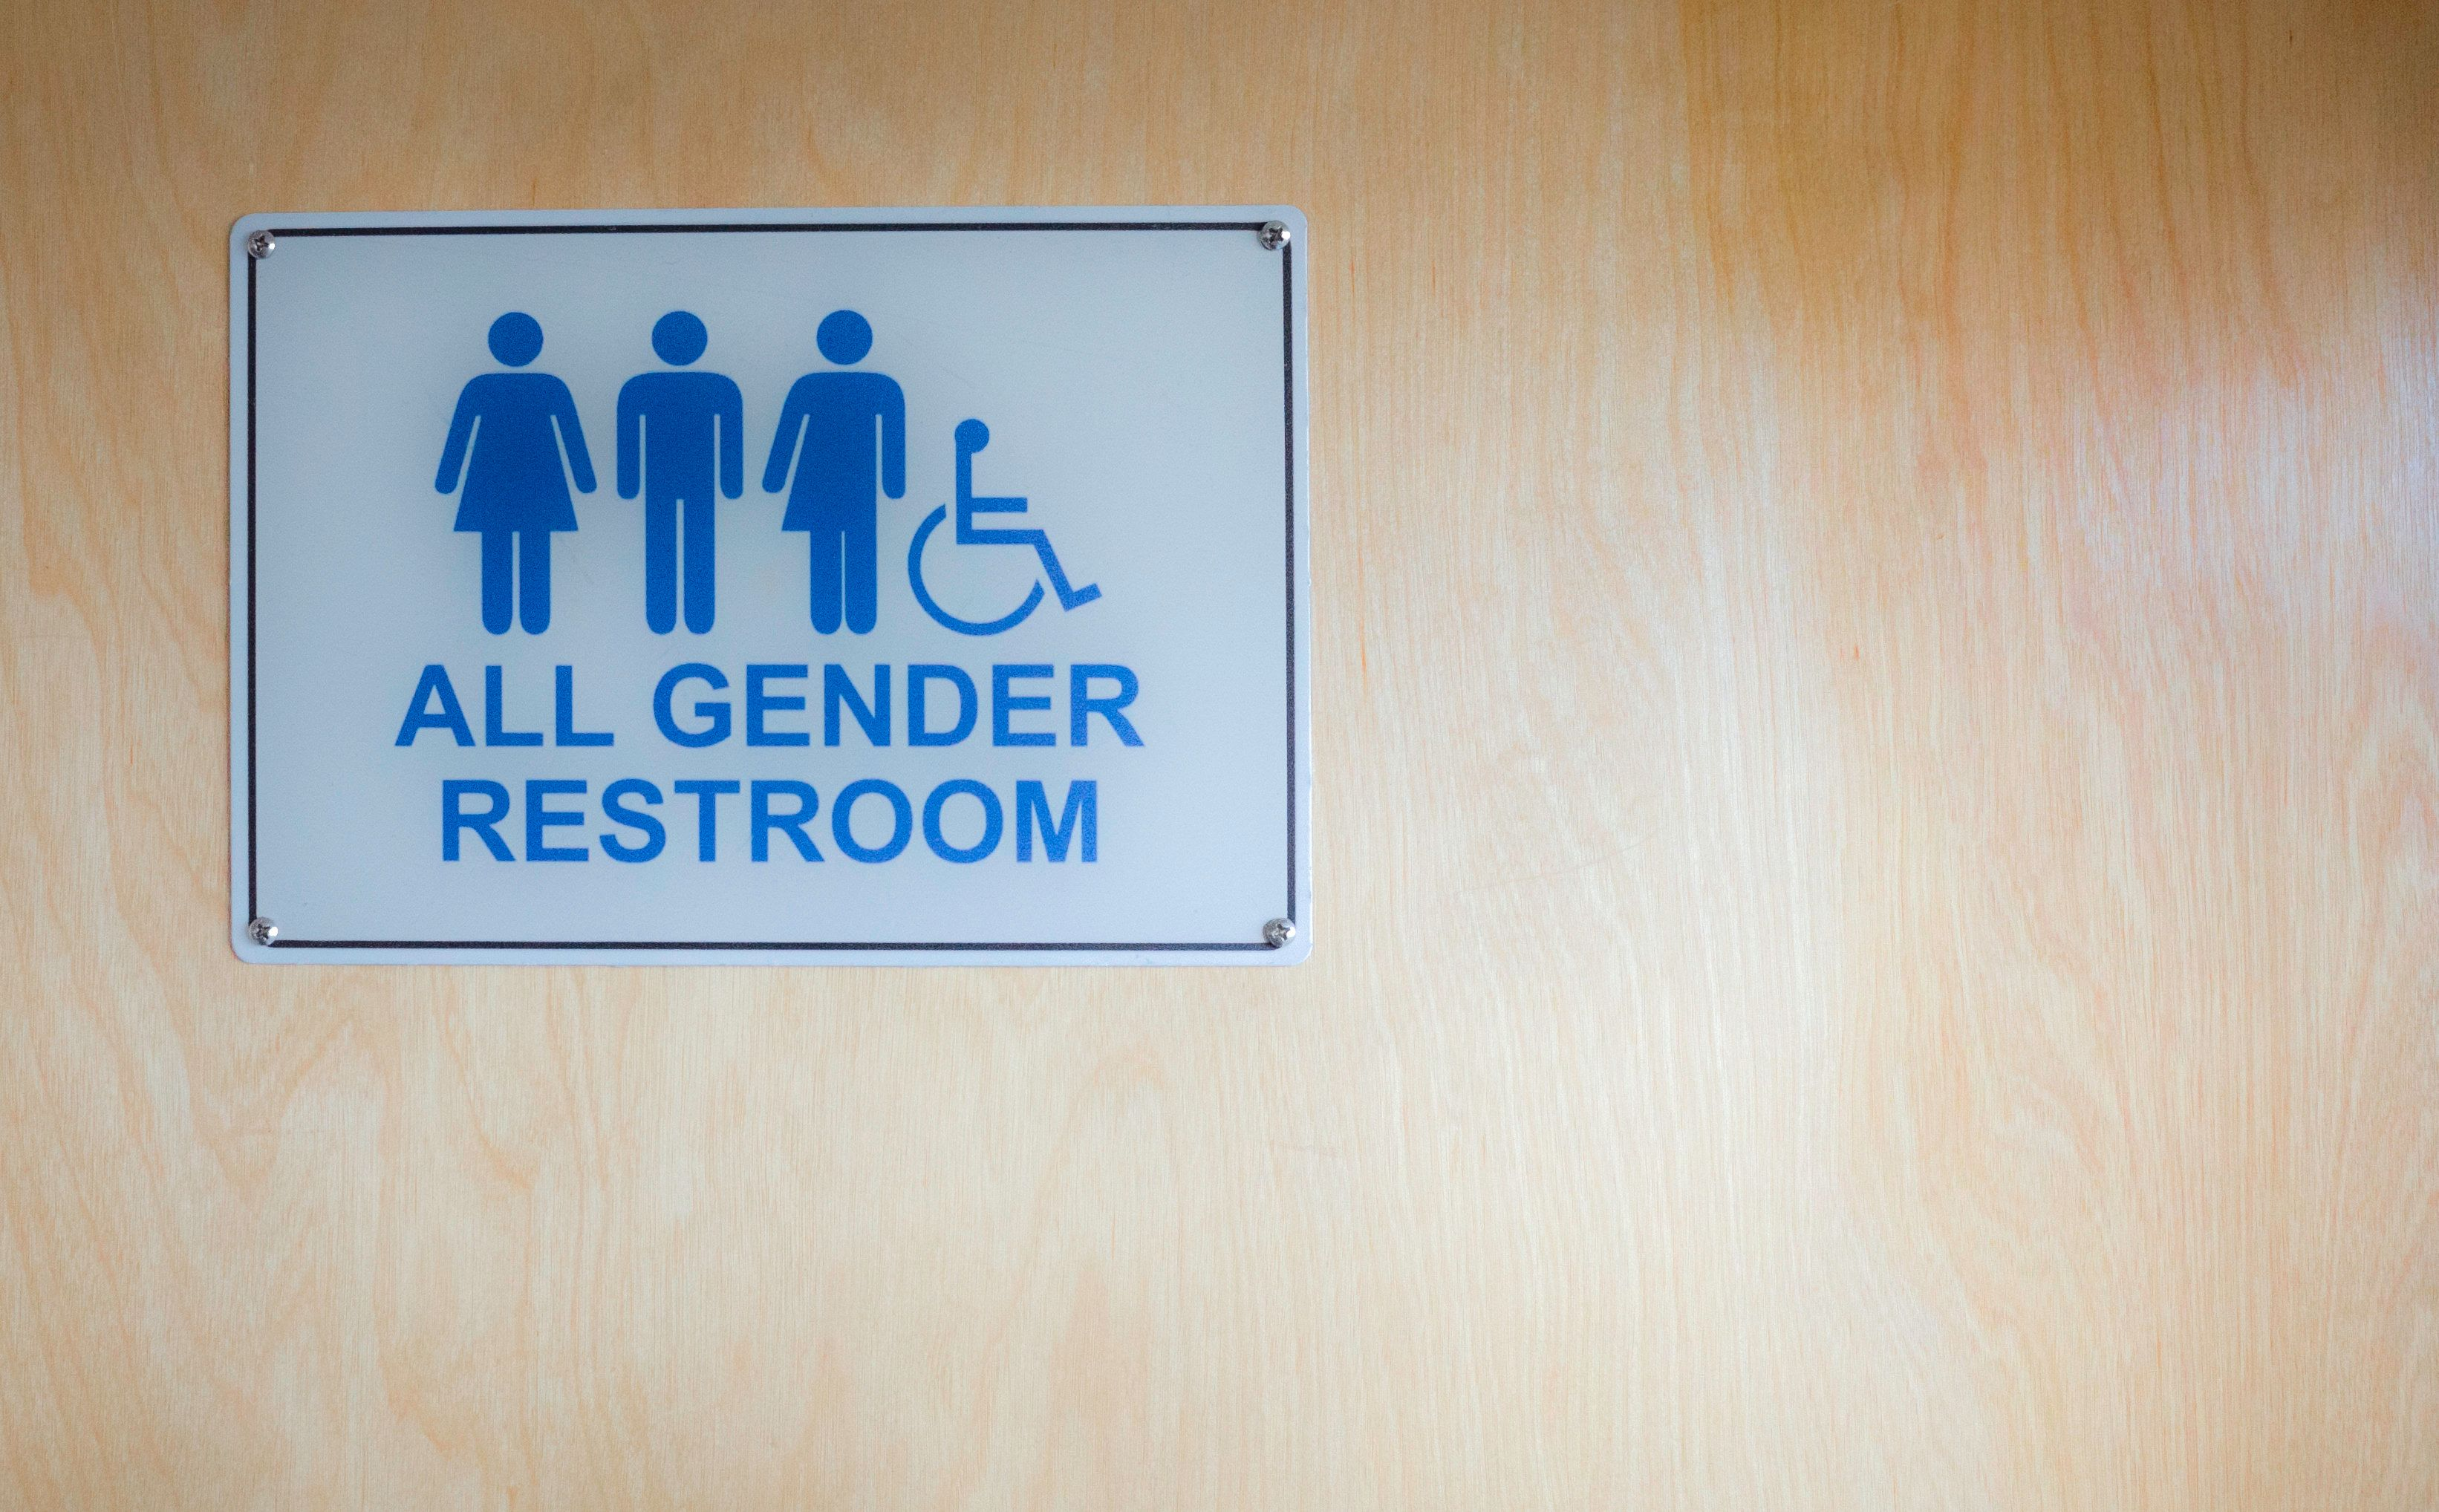 Residents of Alaska's largest city refused to condone anti-transgender discrimination.